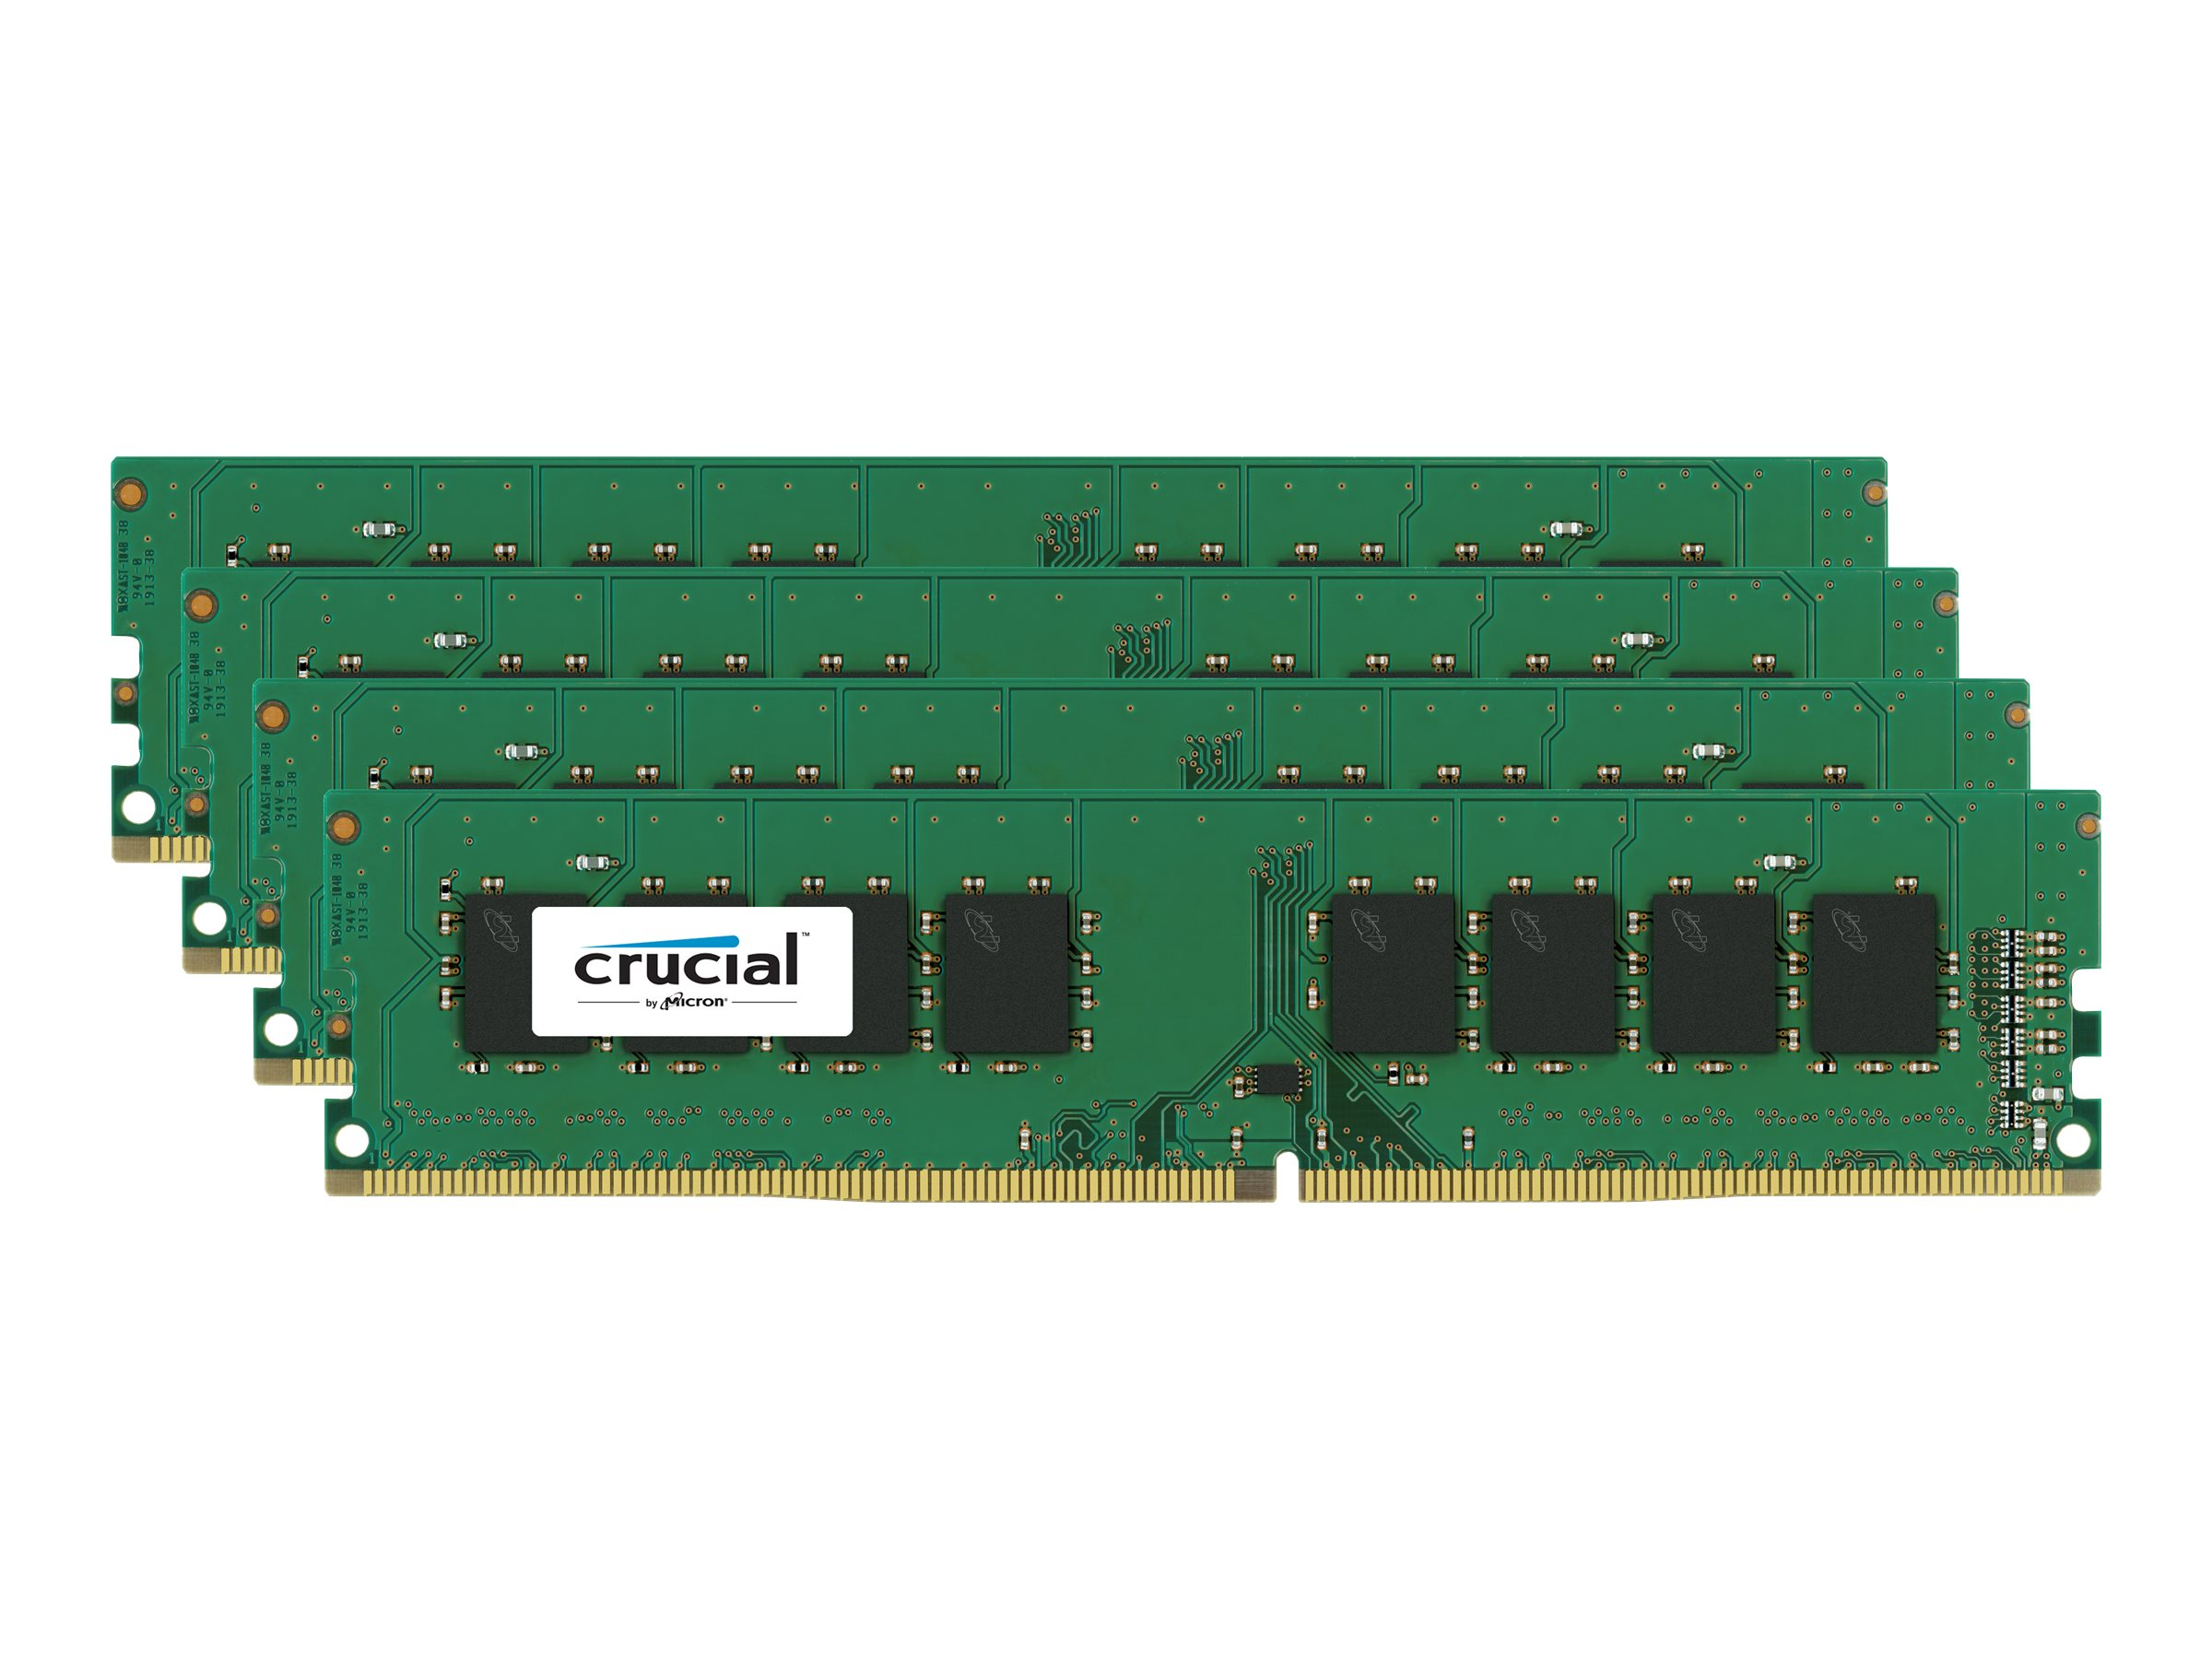 Crucial 16GB PC4-17000 288-pin DDR4 SDRAM UDIMM Kit, CT4K4G4DFS8213, 17714309, Memory